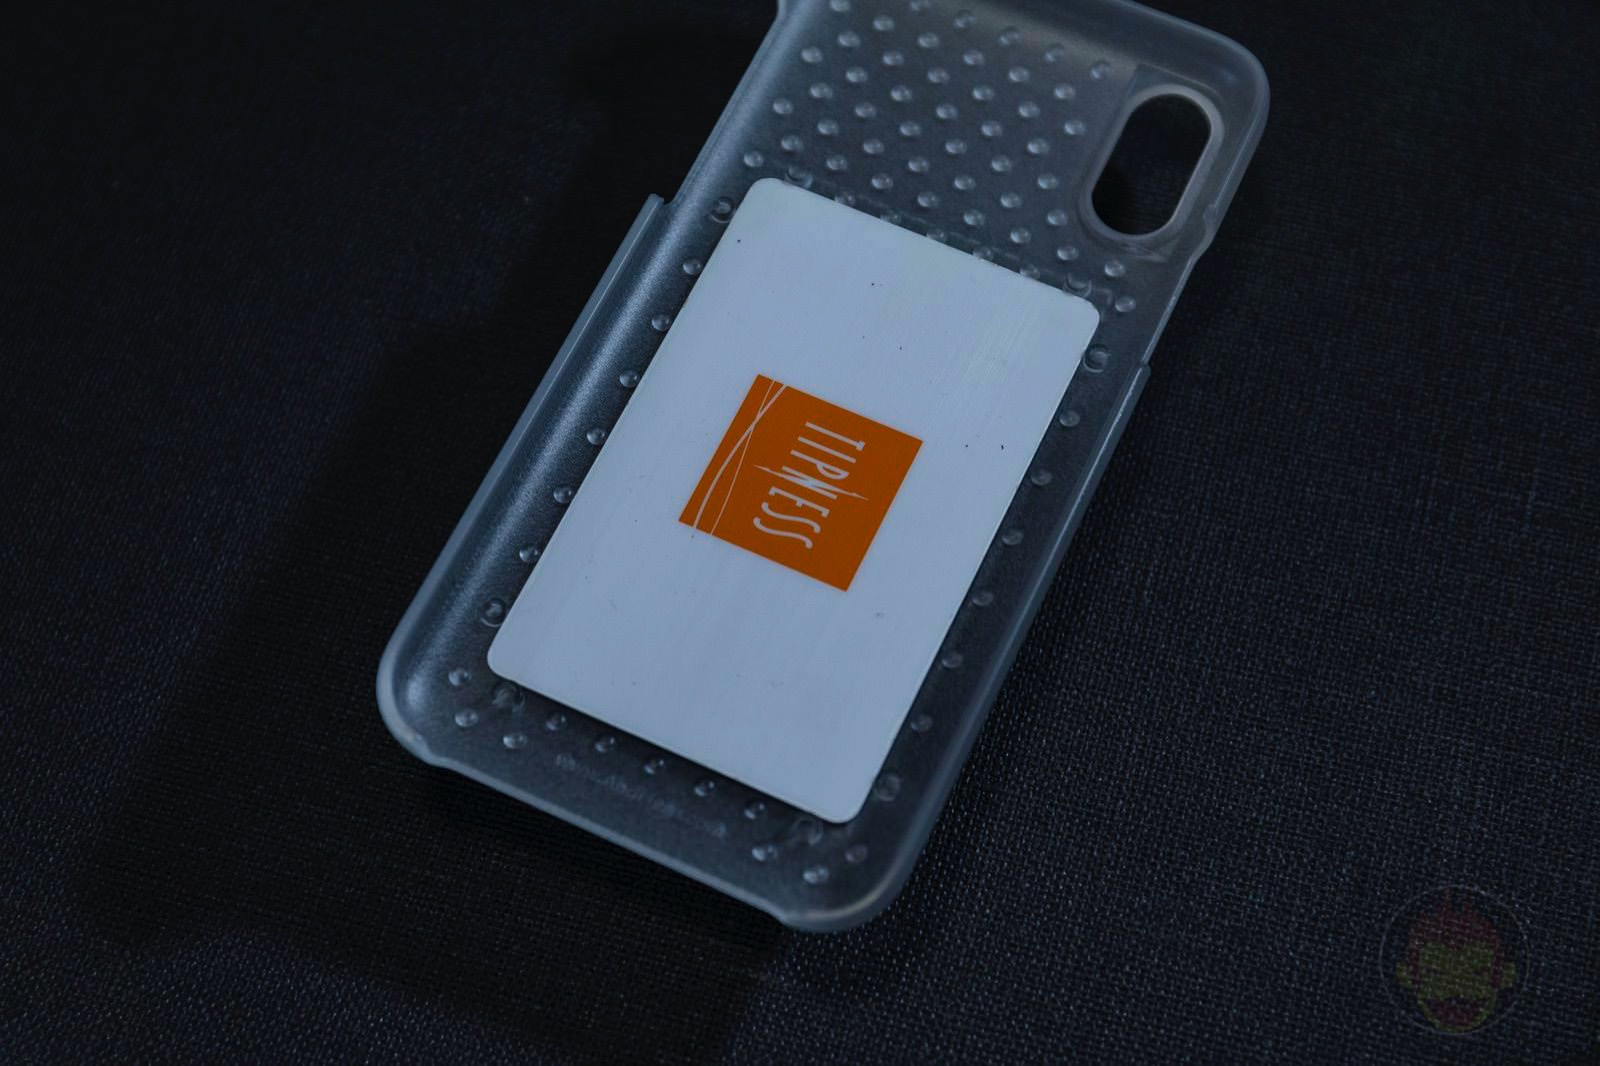 AndMesh-Haptic-Case-for-iPhone-07.jpg